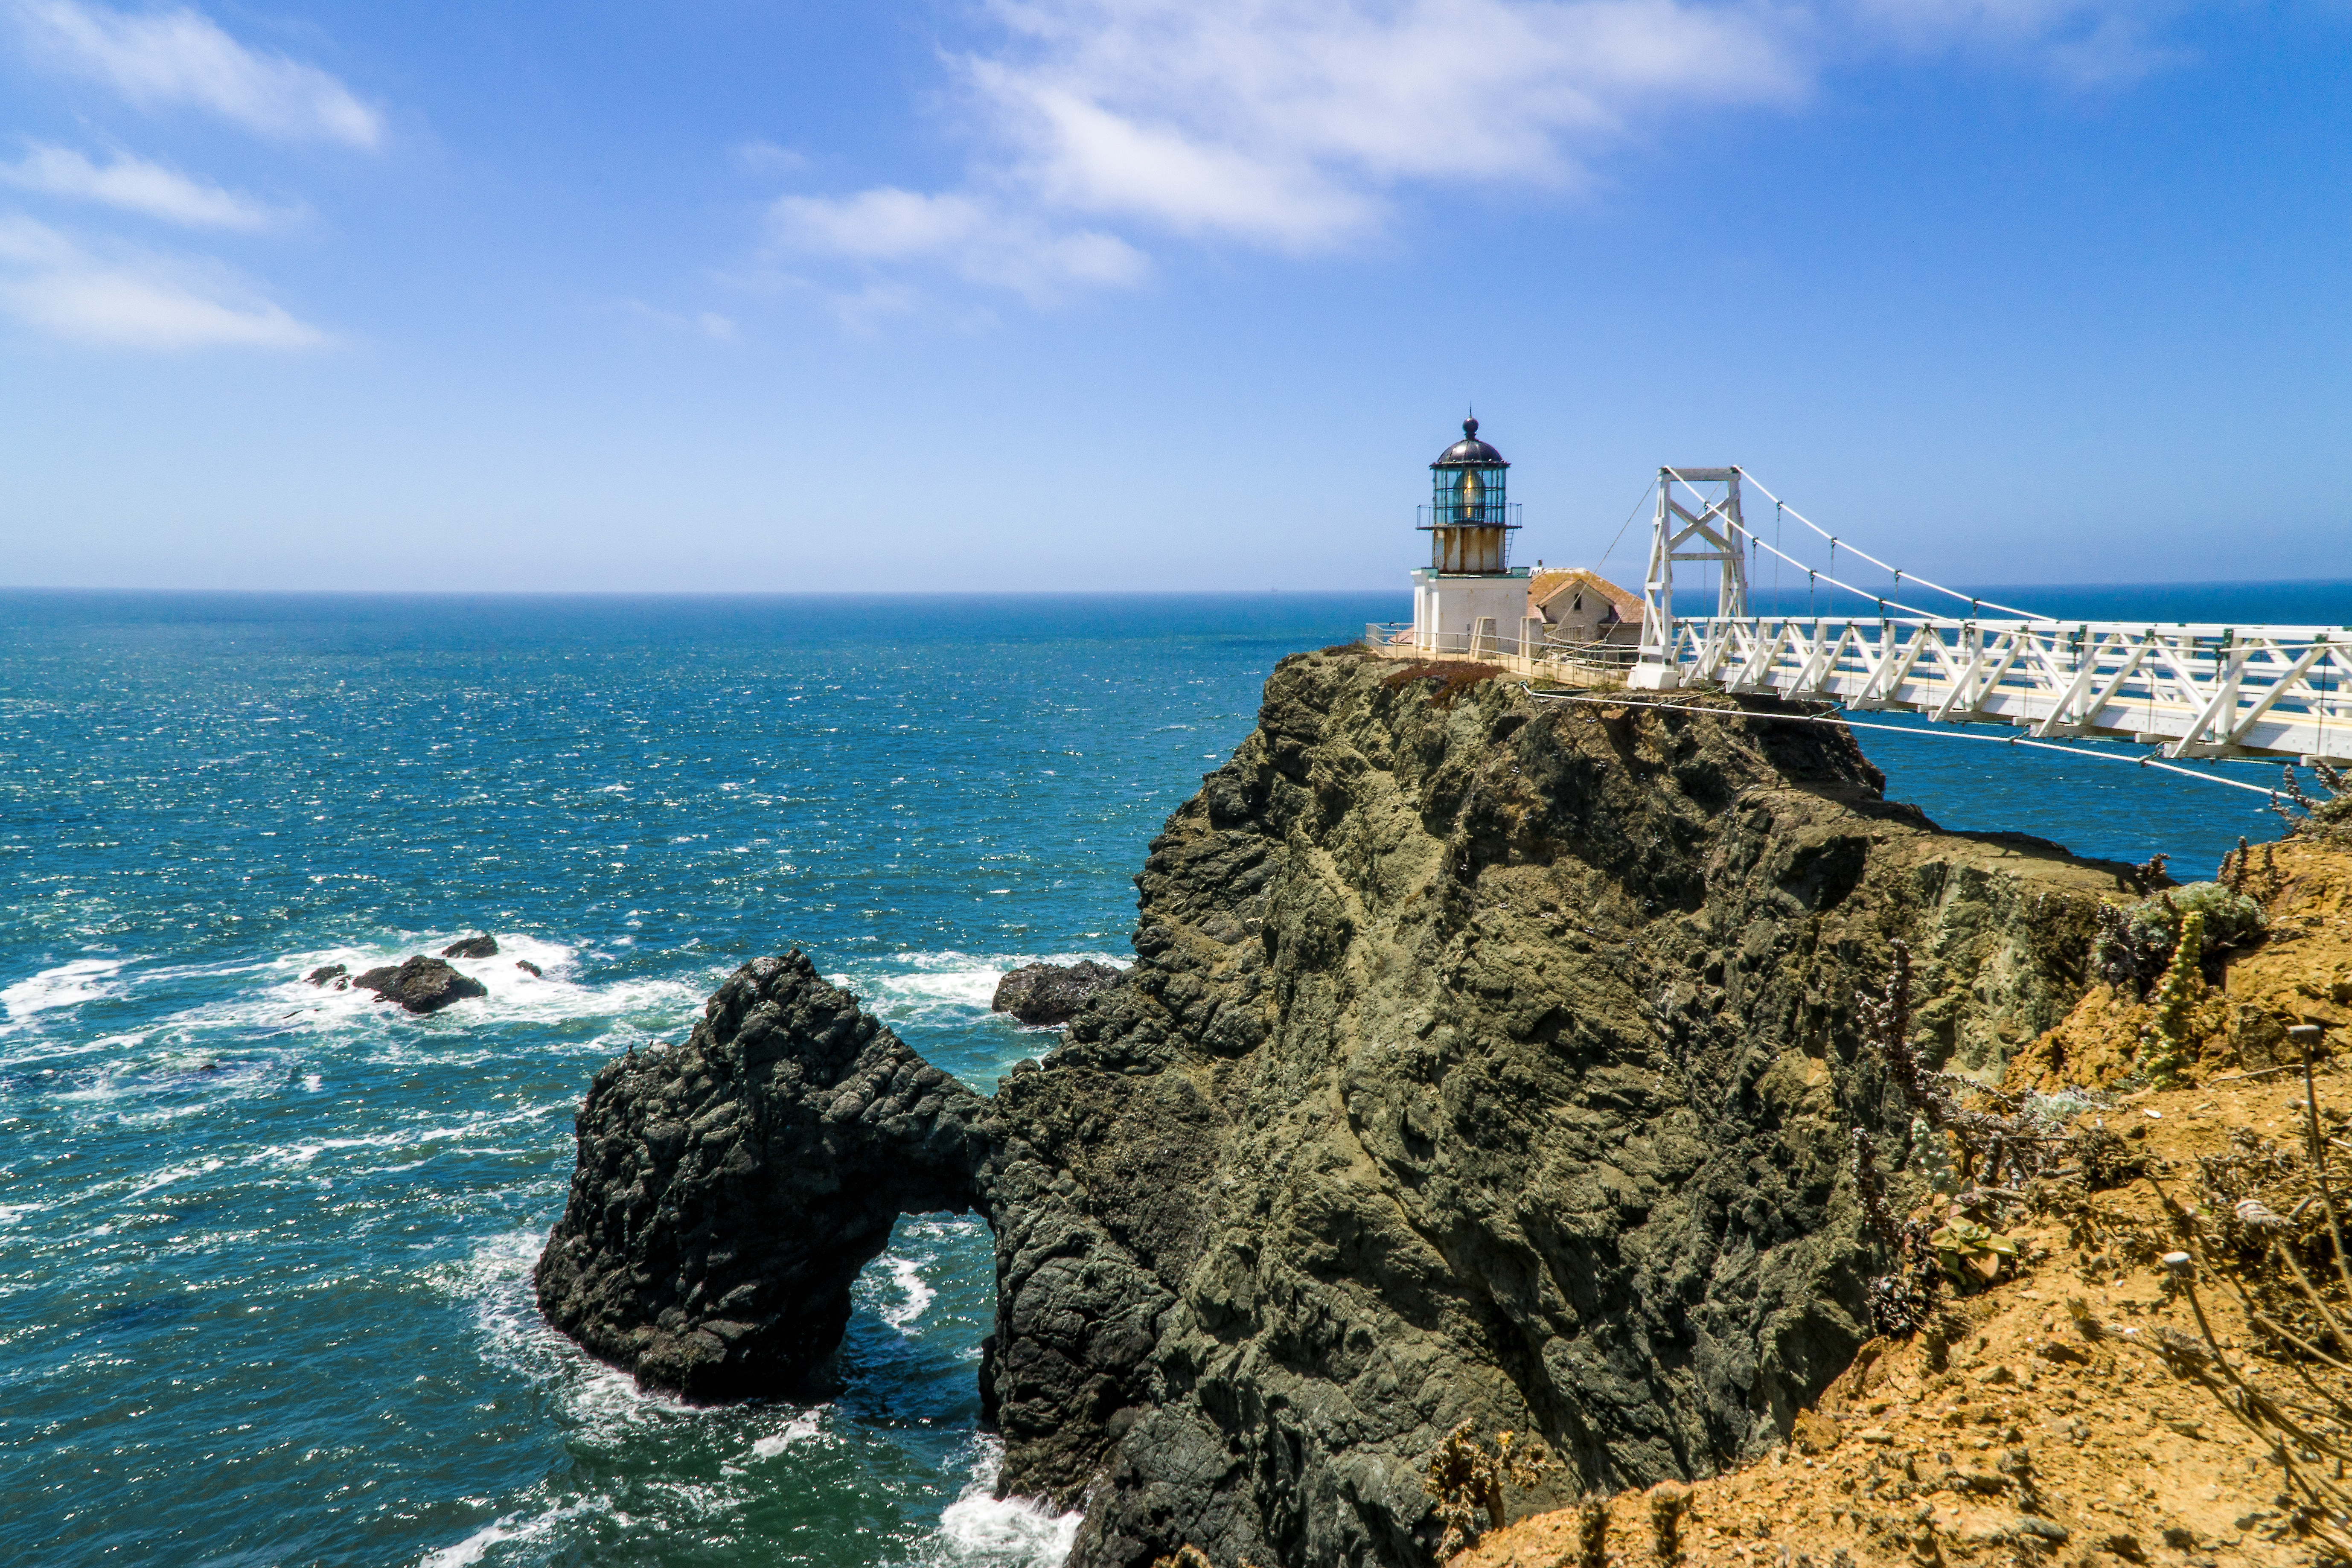 A rocky cliff adjacent to a body of water. Point Bonita Lighthouse is on the cliff. A bridge spans from land to the area of the cliff that the light house is on.